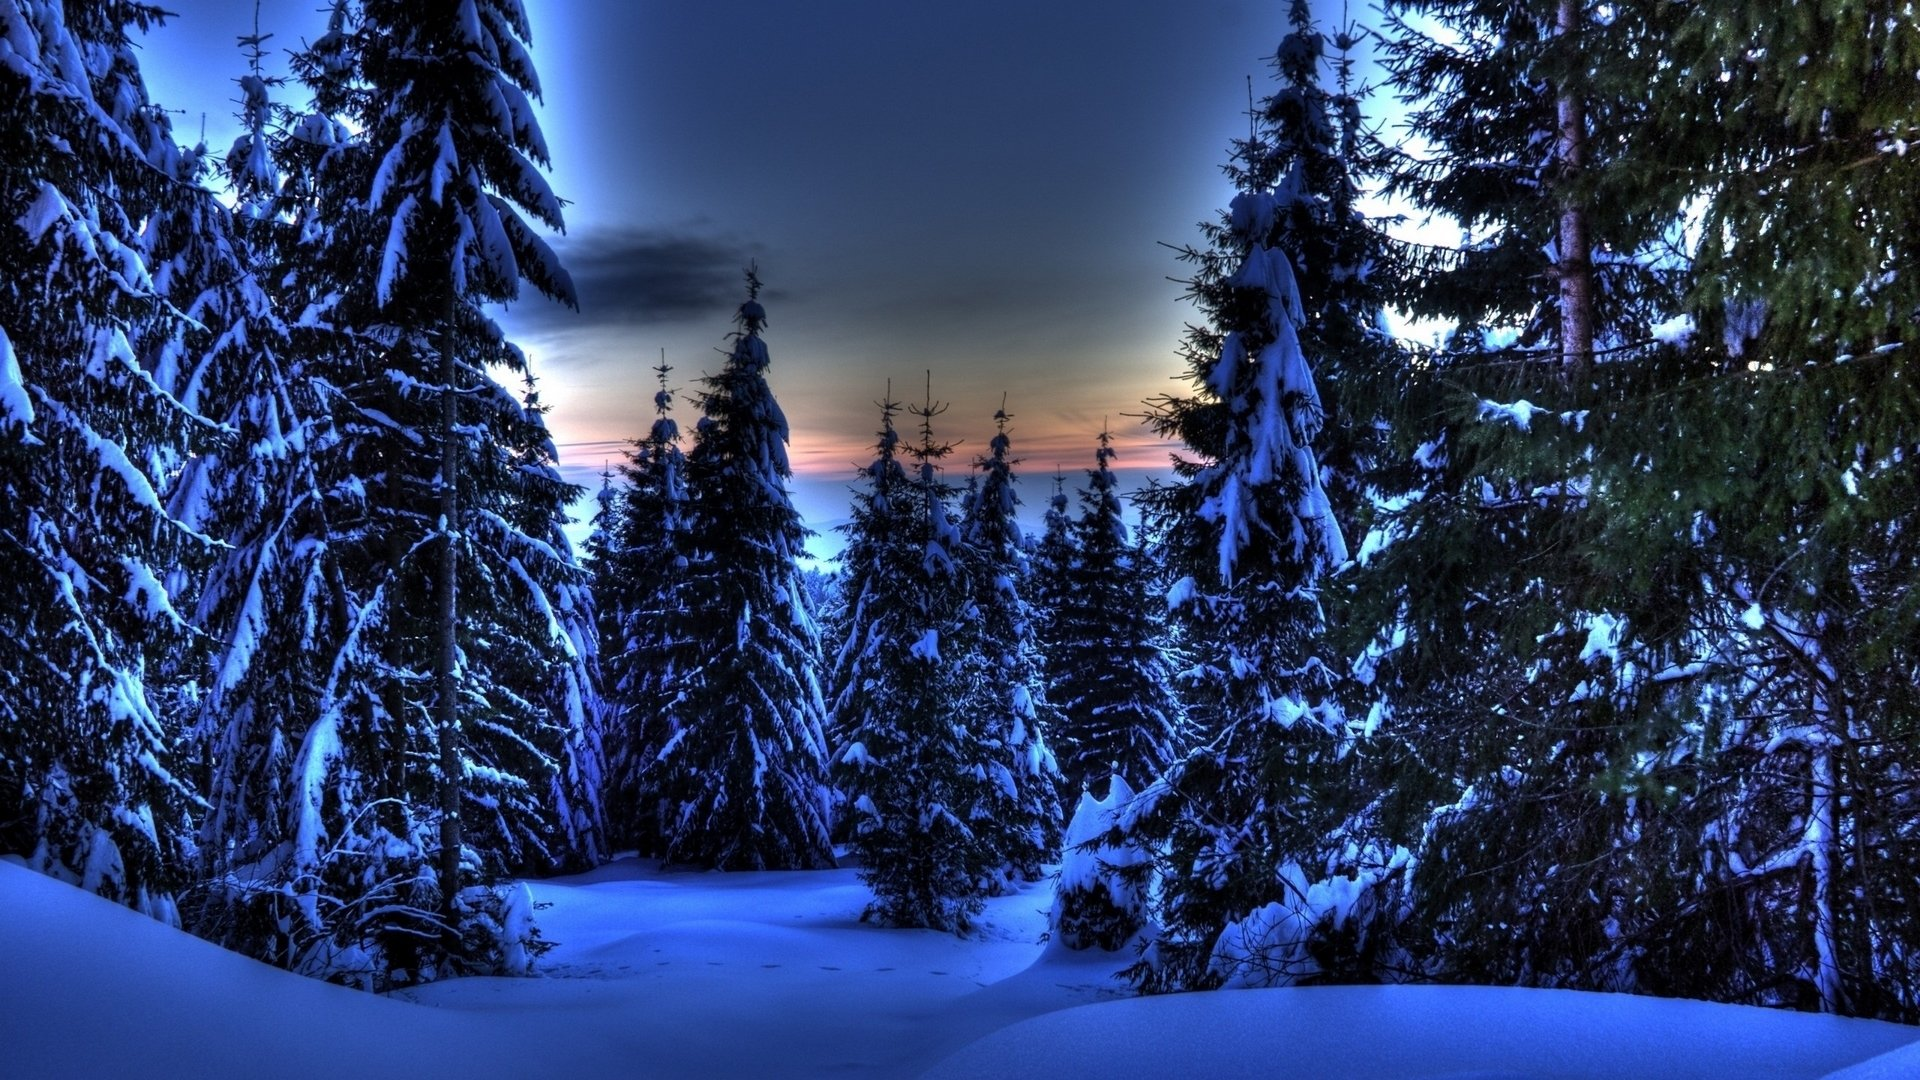 Download Full Hd 1920x1080 Winter Computer Wallpaper Id 252043 For Free